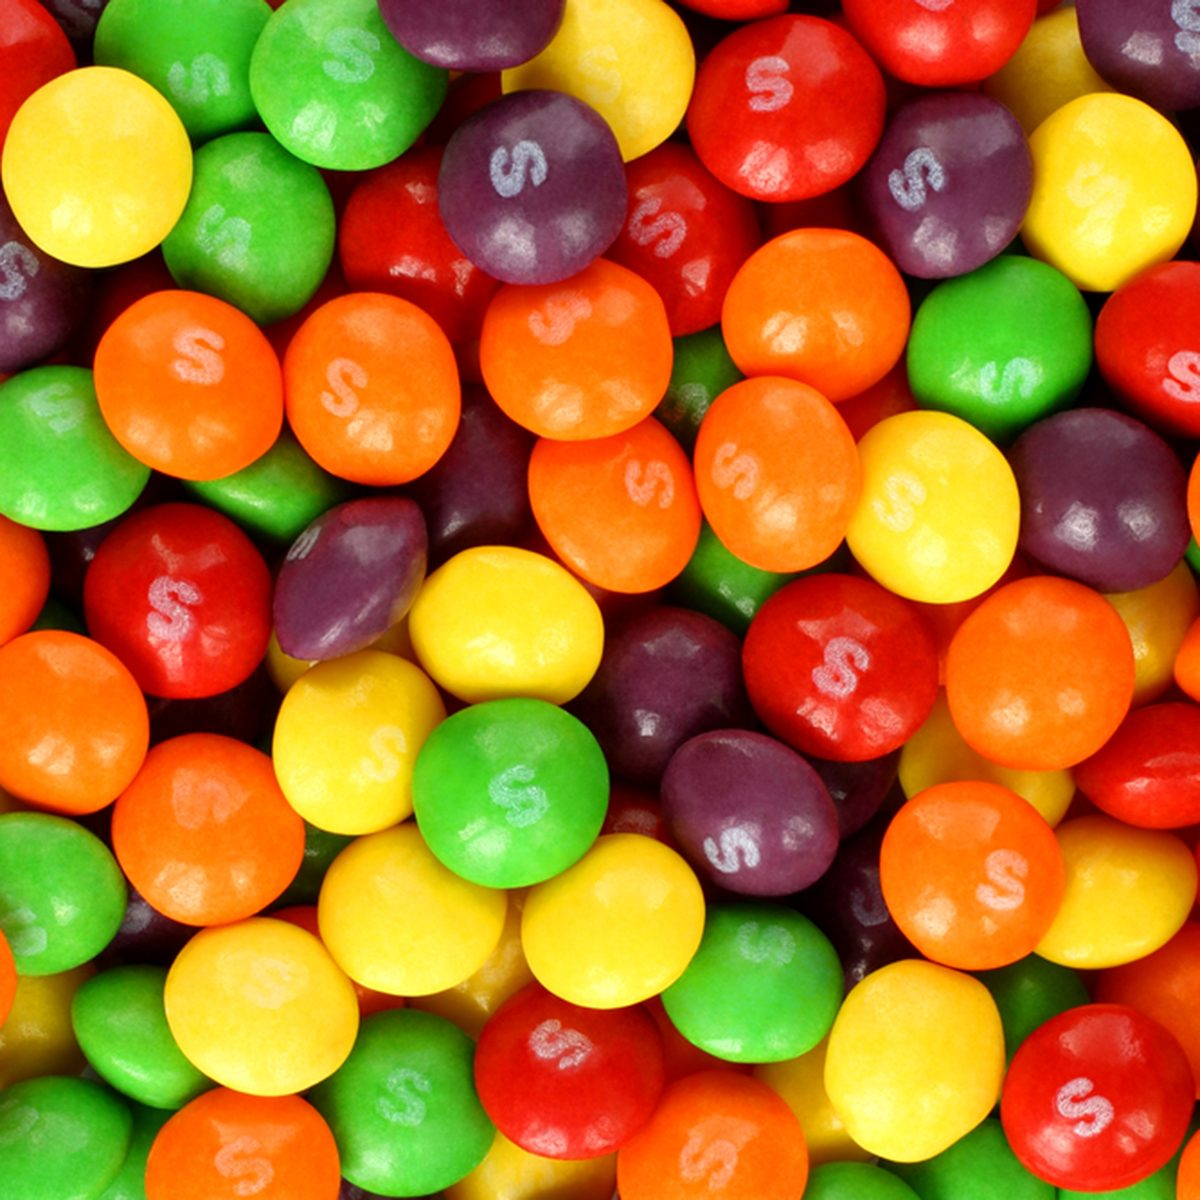 Skittles multicolored fruit candies background.